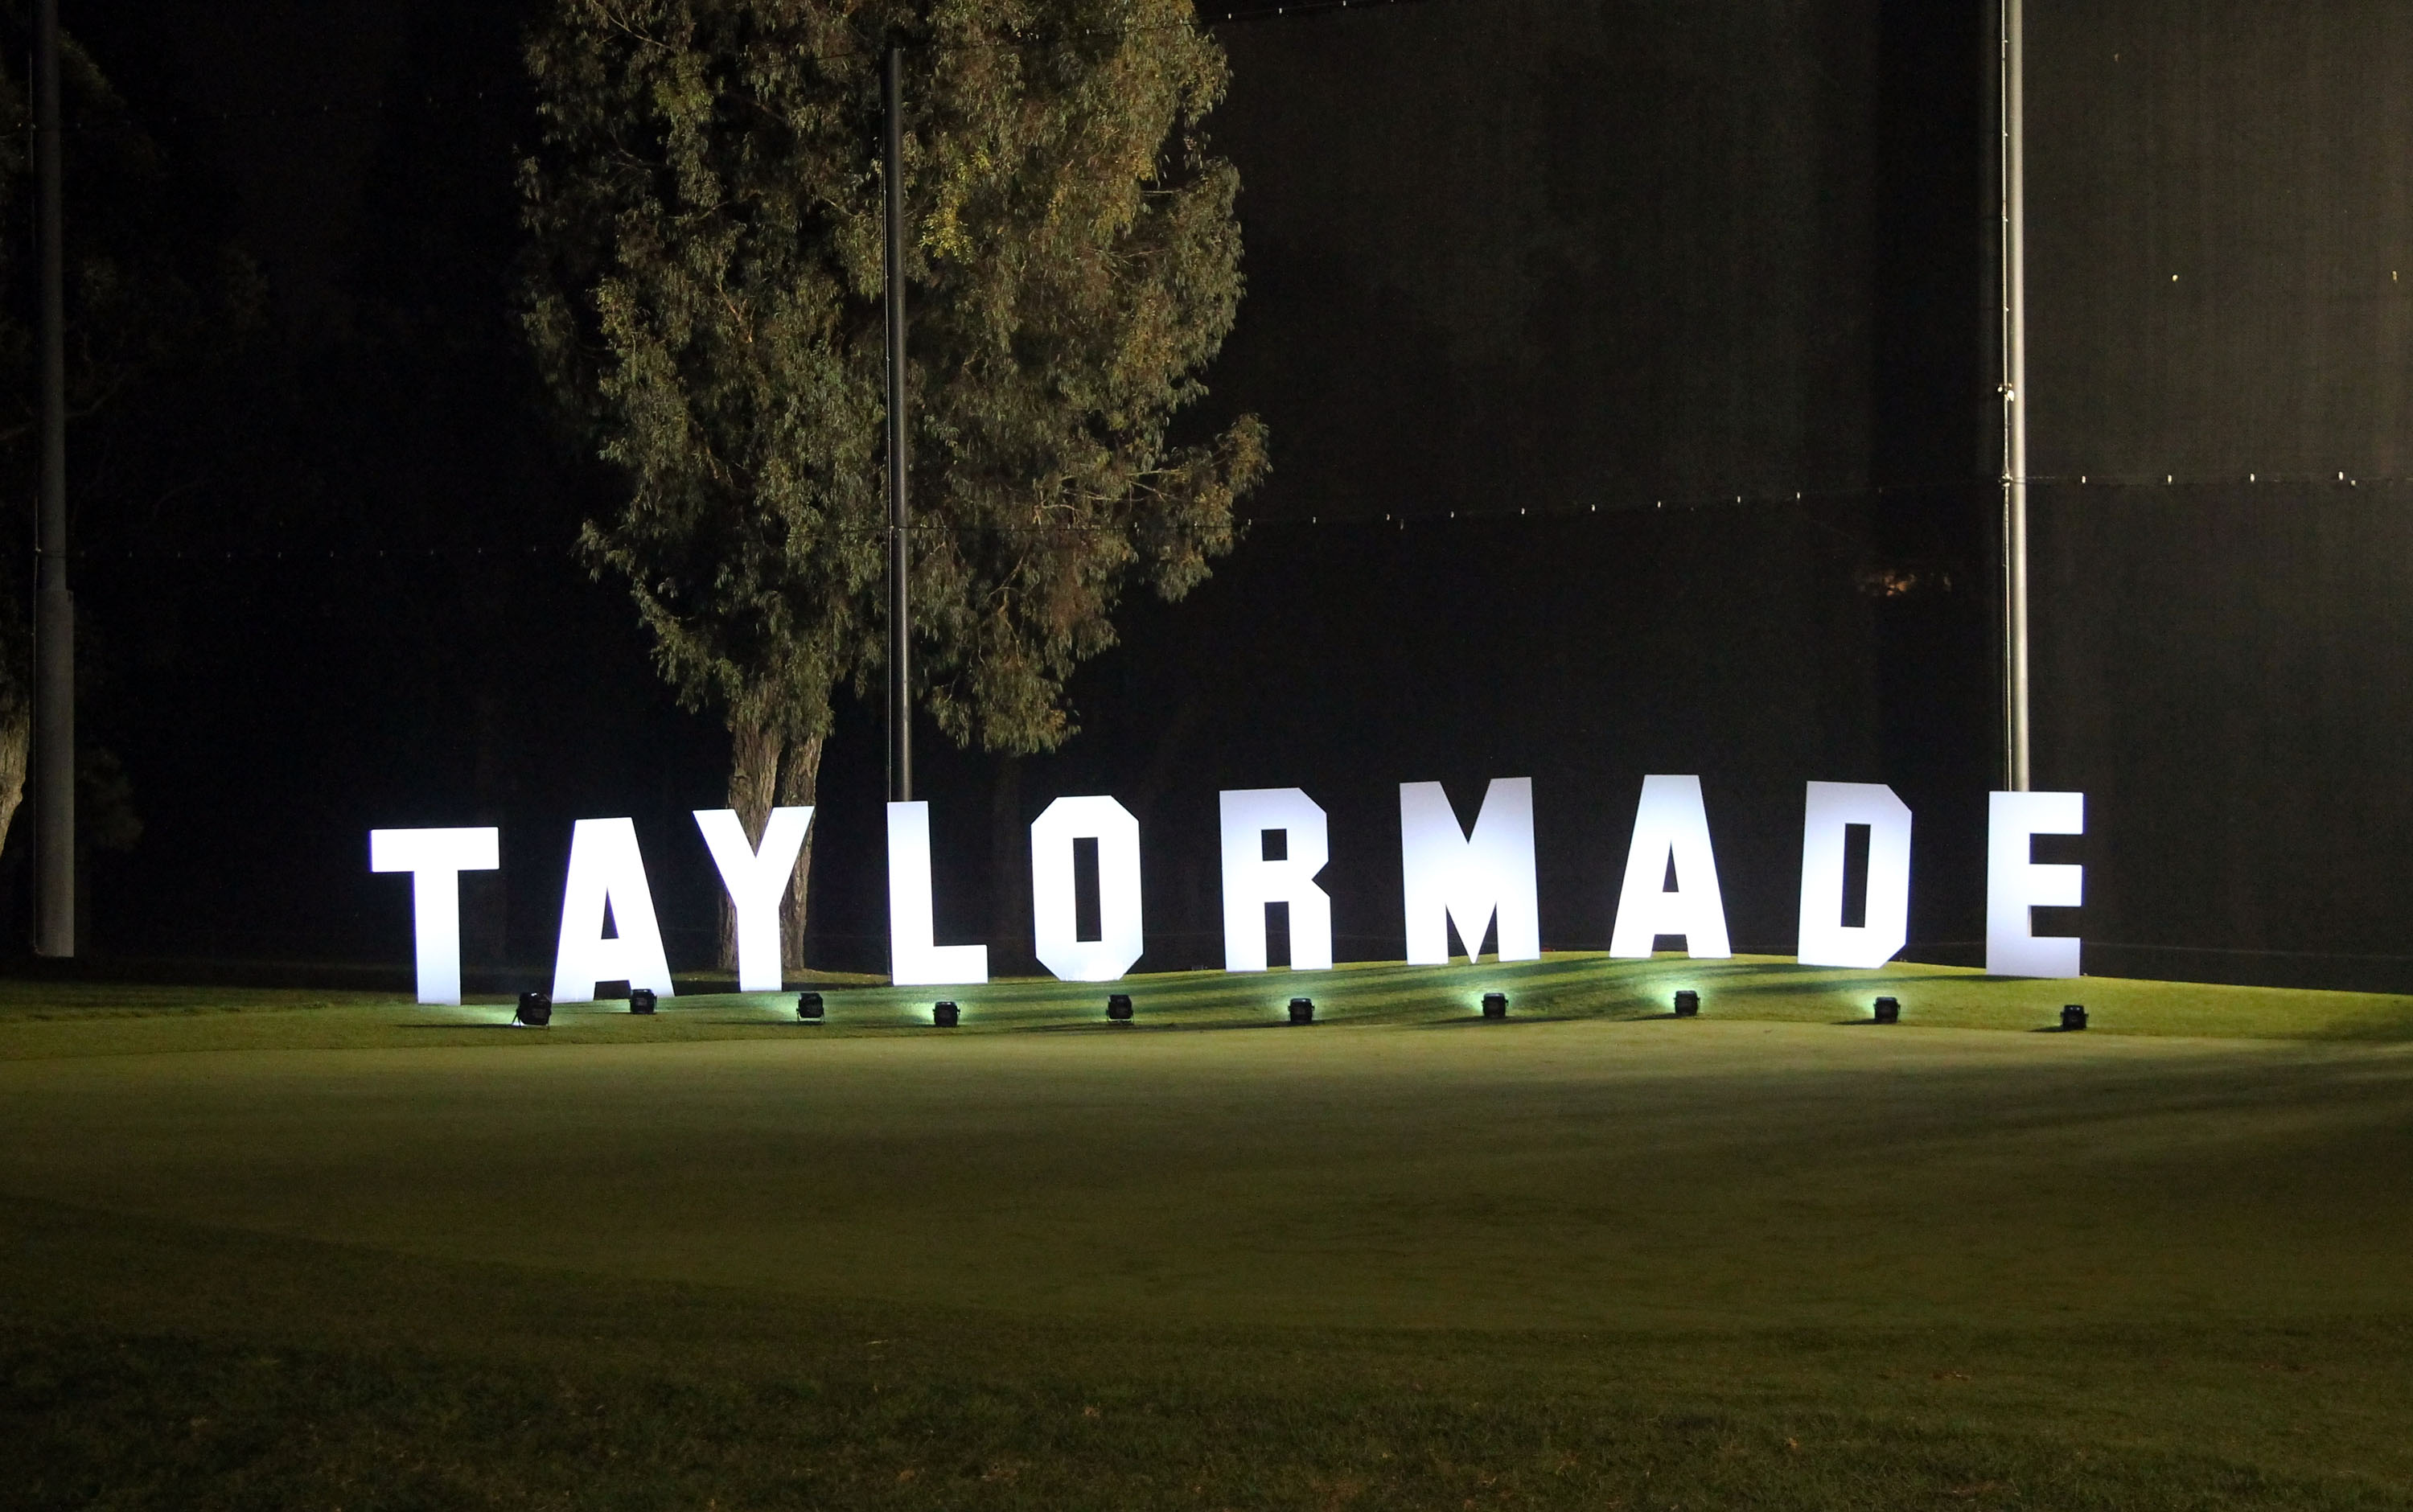 TaylorMade statement: rollback would be detrimental to golf at every level